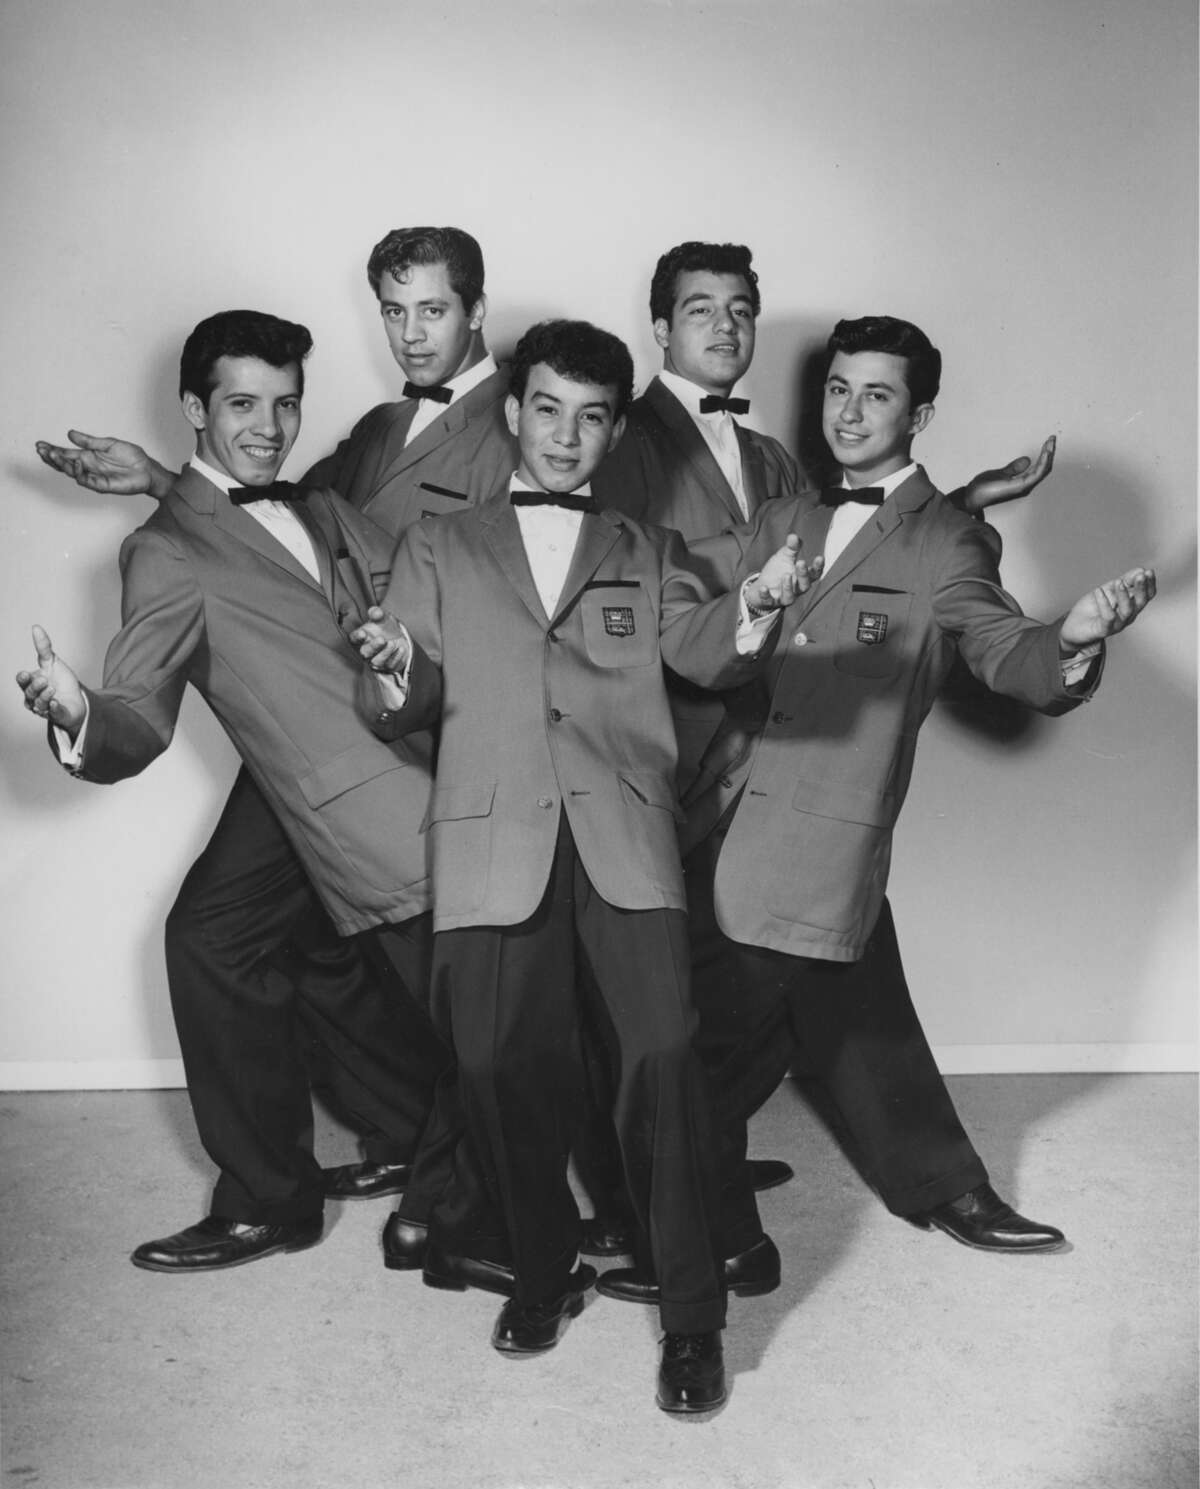 In 1960, the Royal Jesters' lineup was Toni Arce (from left), Louis Escalante, Henry Hernandez, Mike Pedraza and Oscar Lawson.